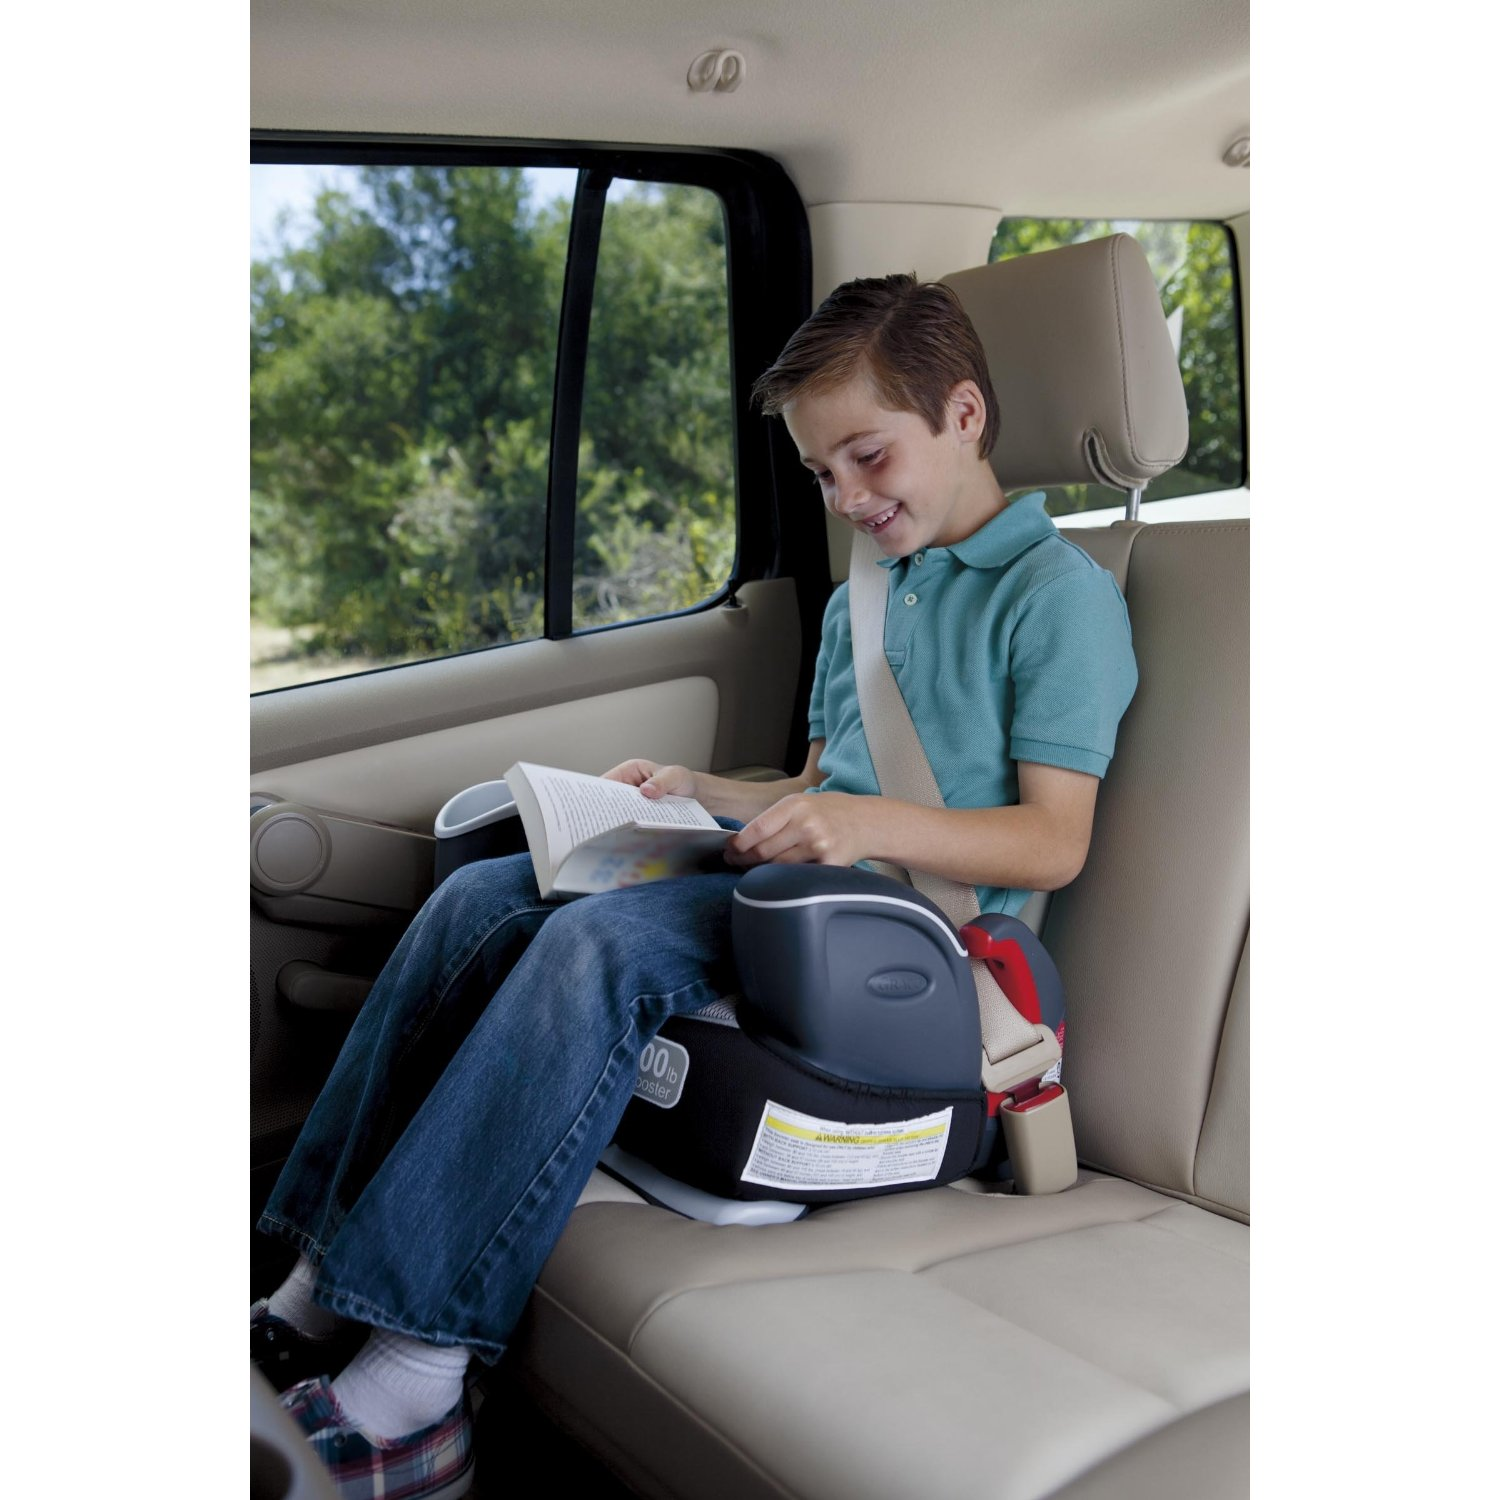 safety harness with booster seats safety get free image about wiring diagram. Black Bedroom Furniture Sets. Home Design Ideas